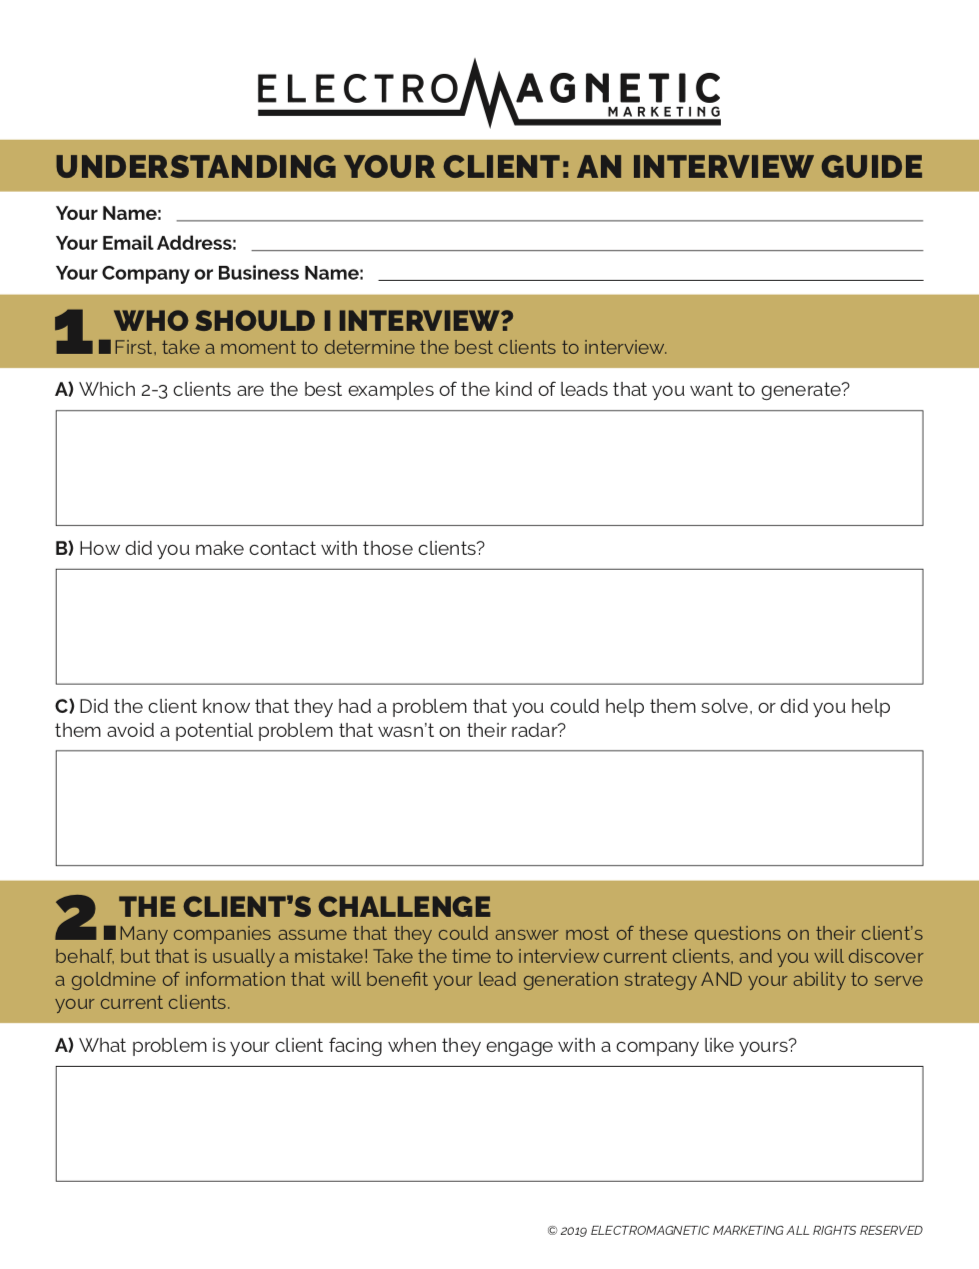 EM Client Interview Guide.png